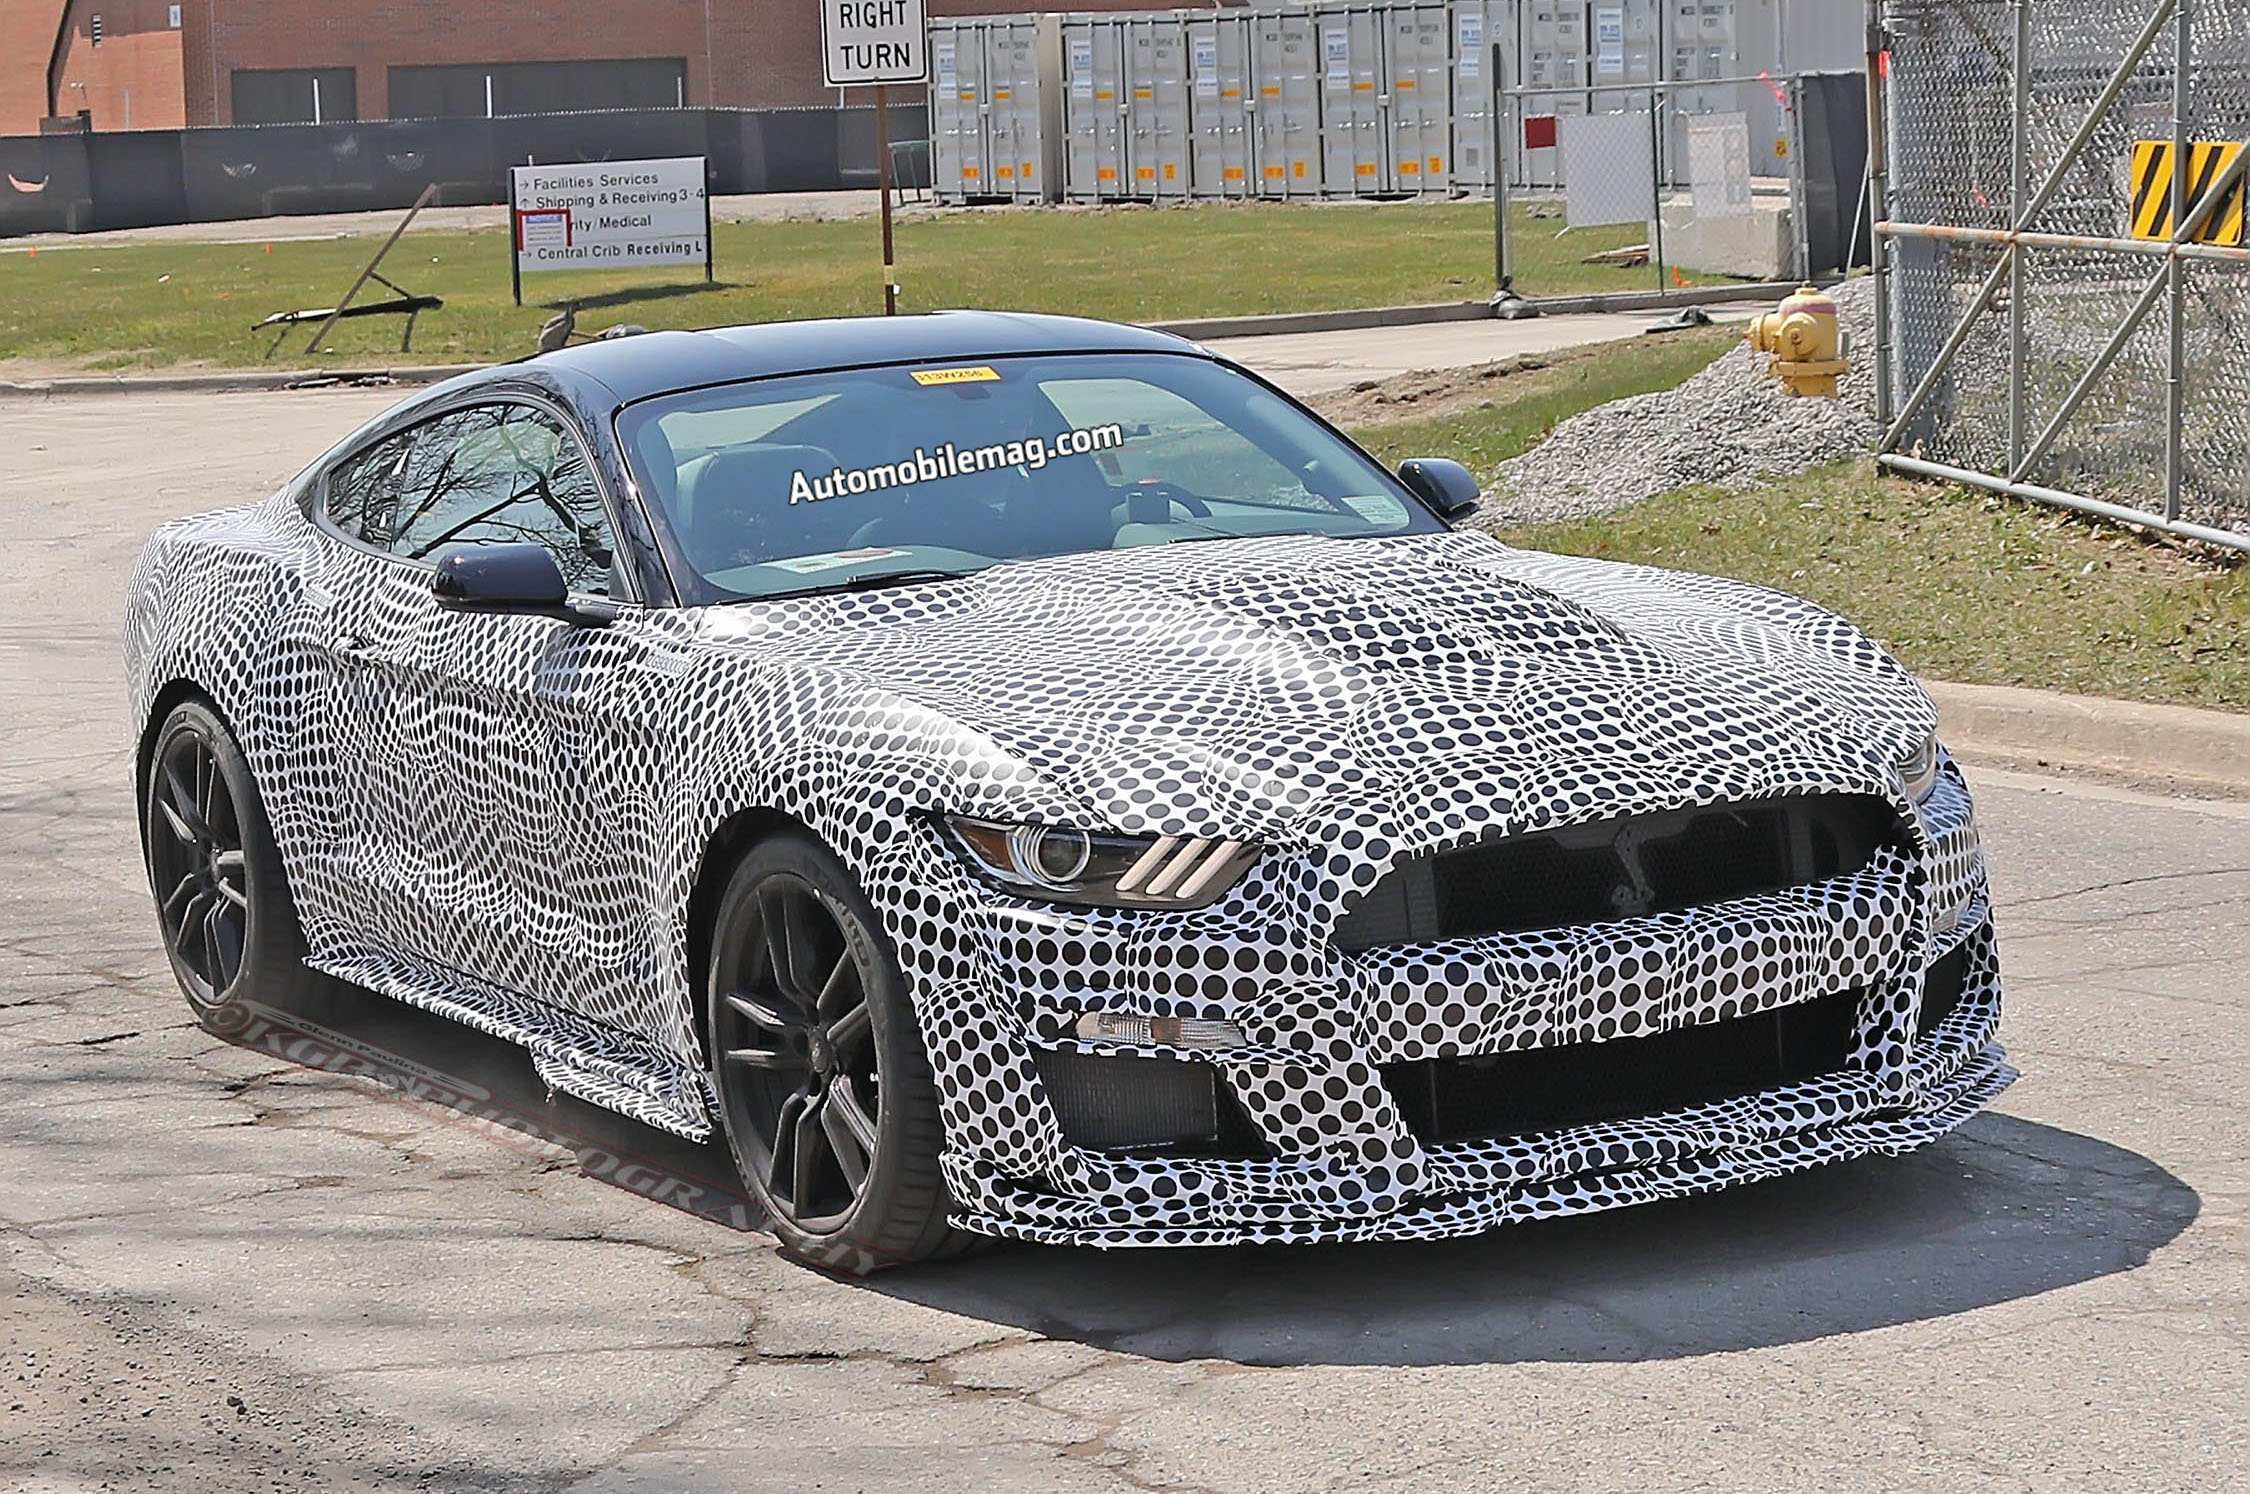 41 All New 2020 Ford Mustang Cobra Rumors for 2020 Ford Mustang Cobra